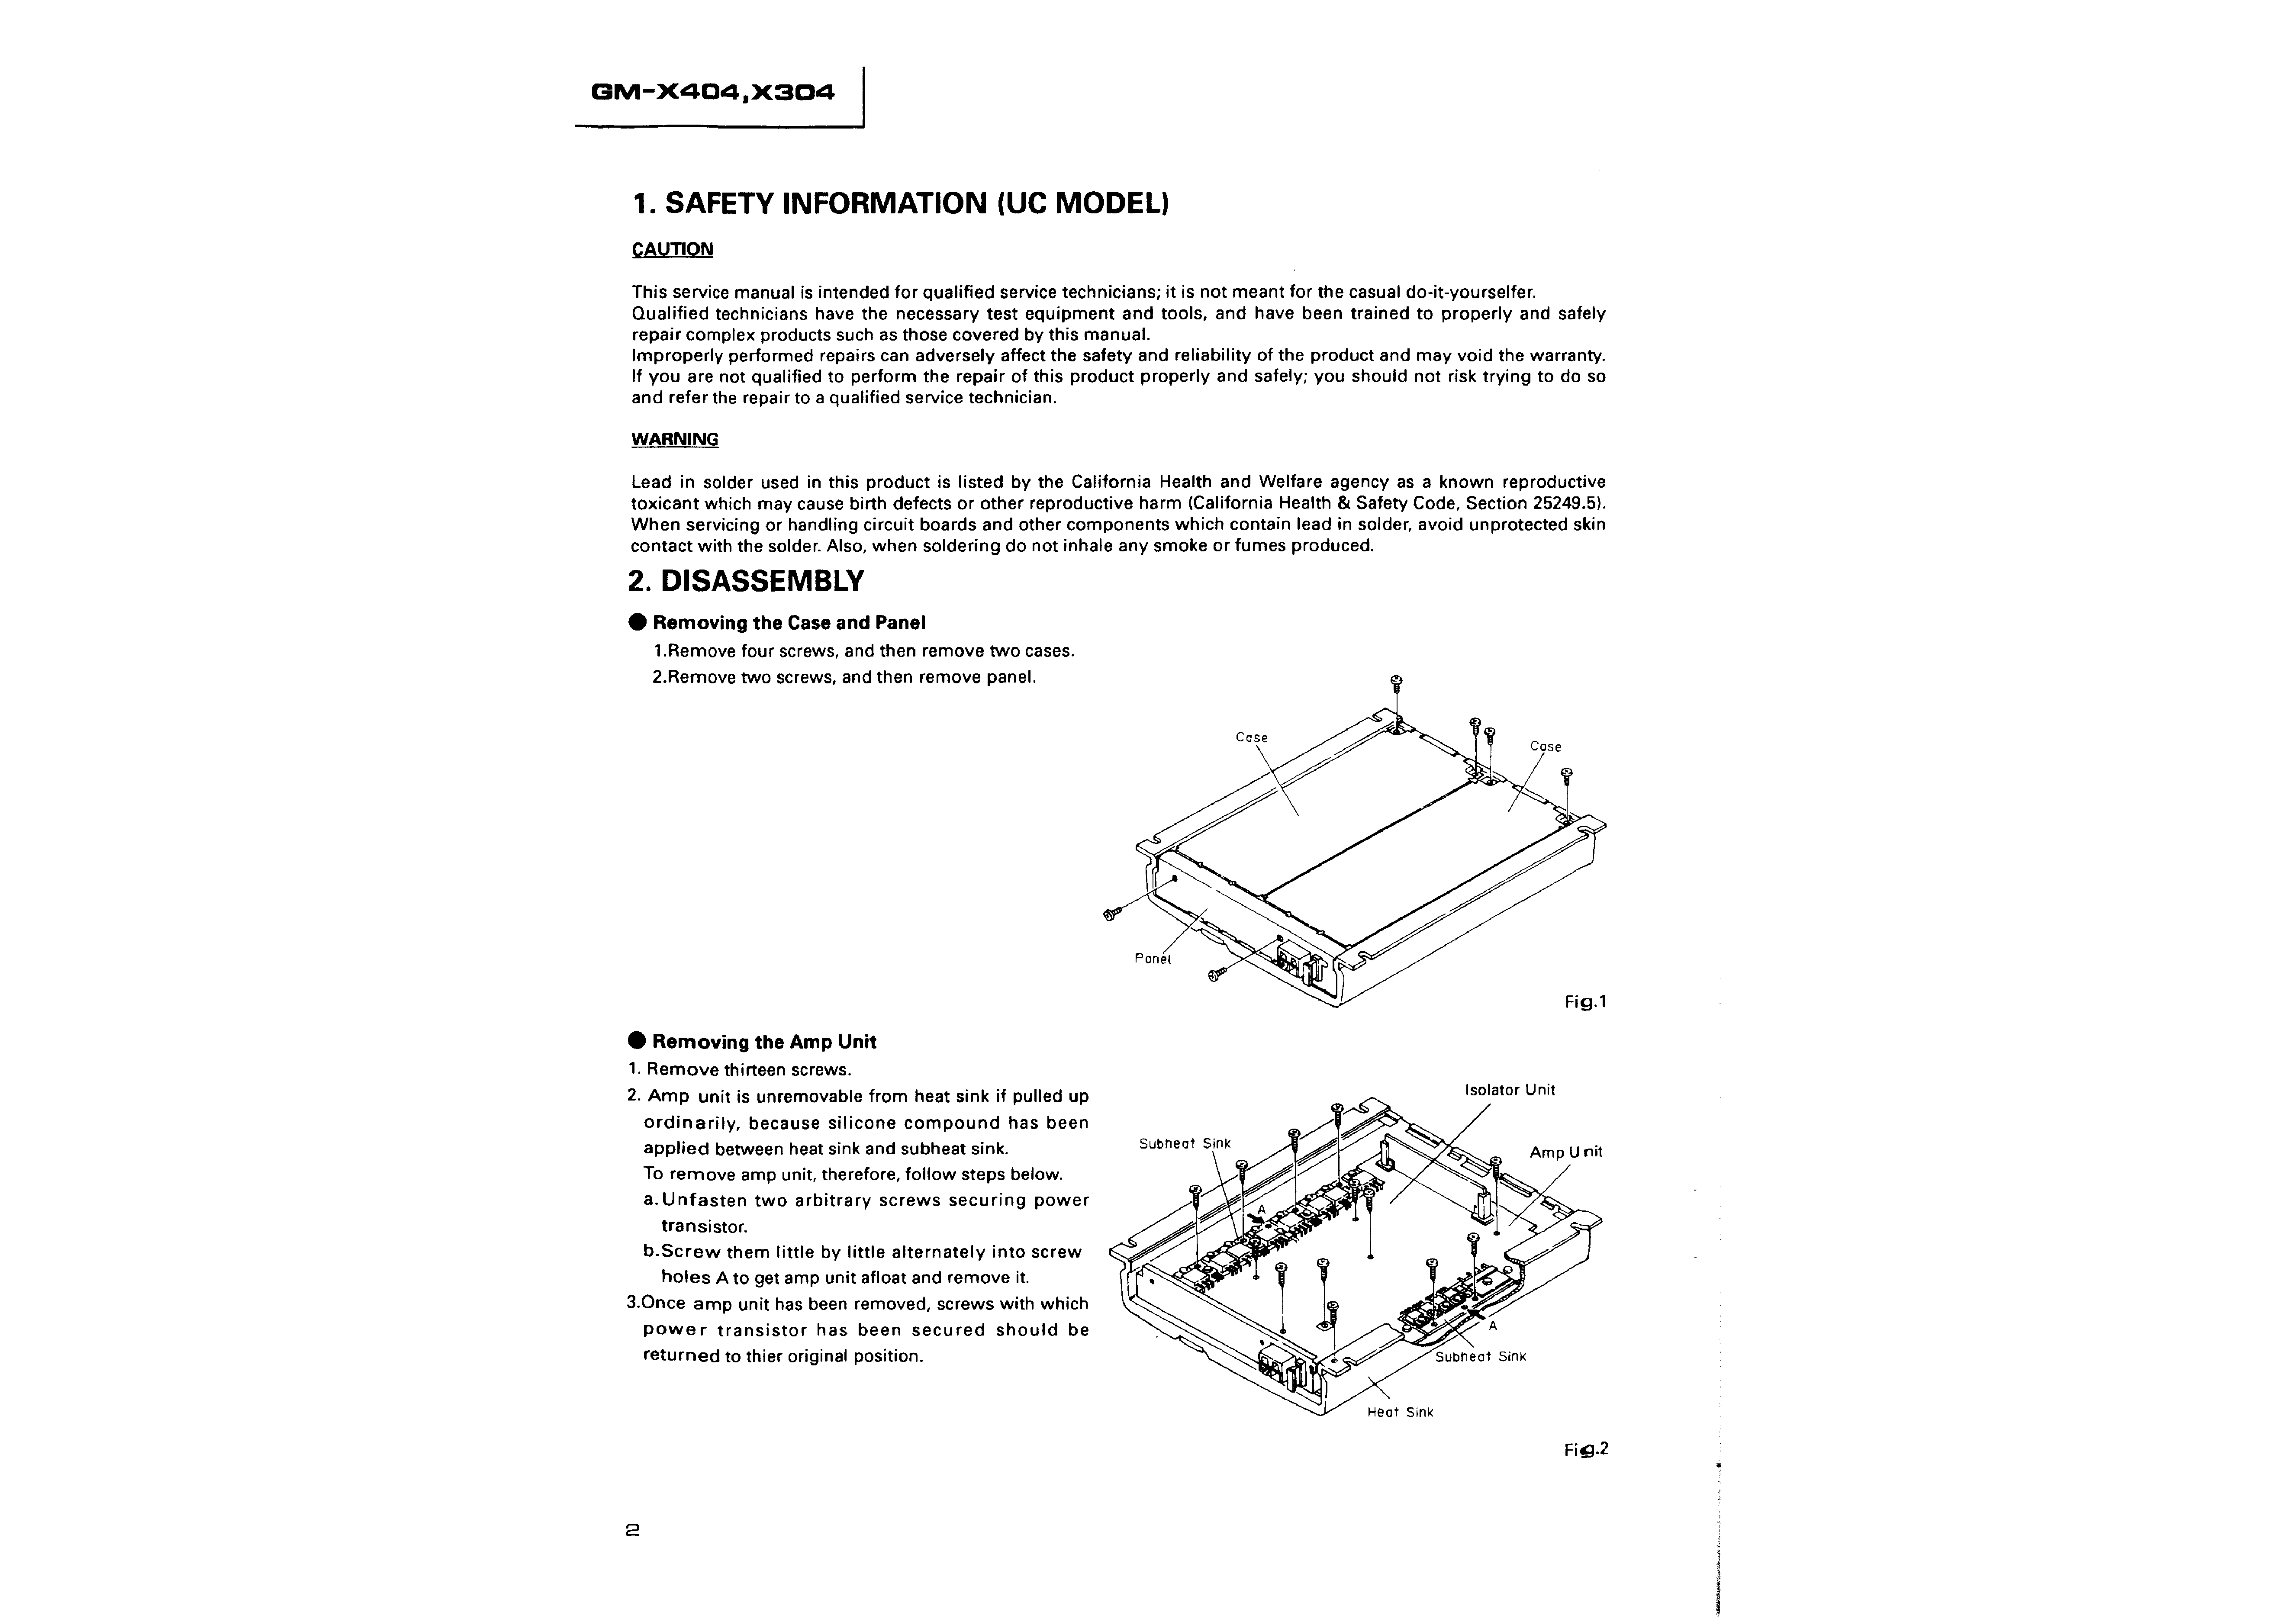 X304 Wiring Diagram Page 2 And Schematics La175 Pioneer Gmx404 Service Manual Immediate Amplifier Gm